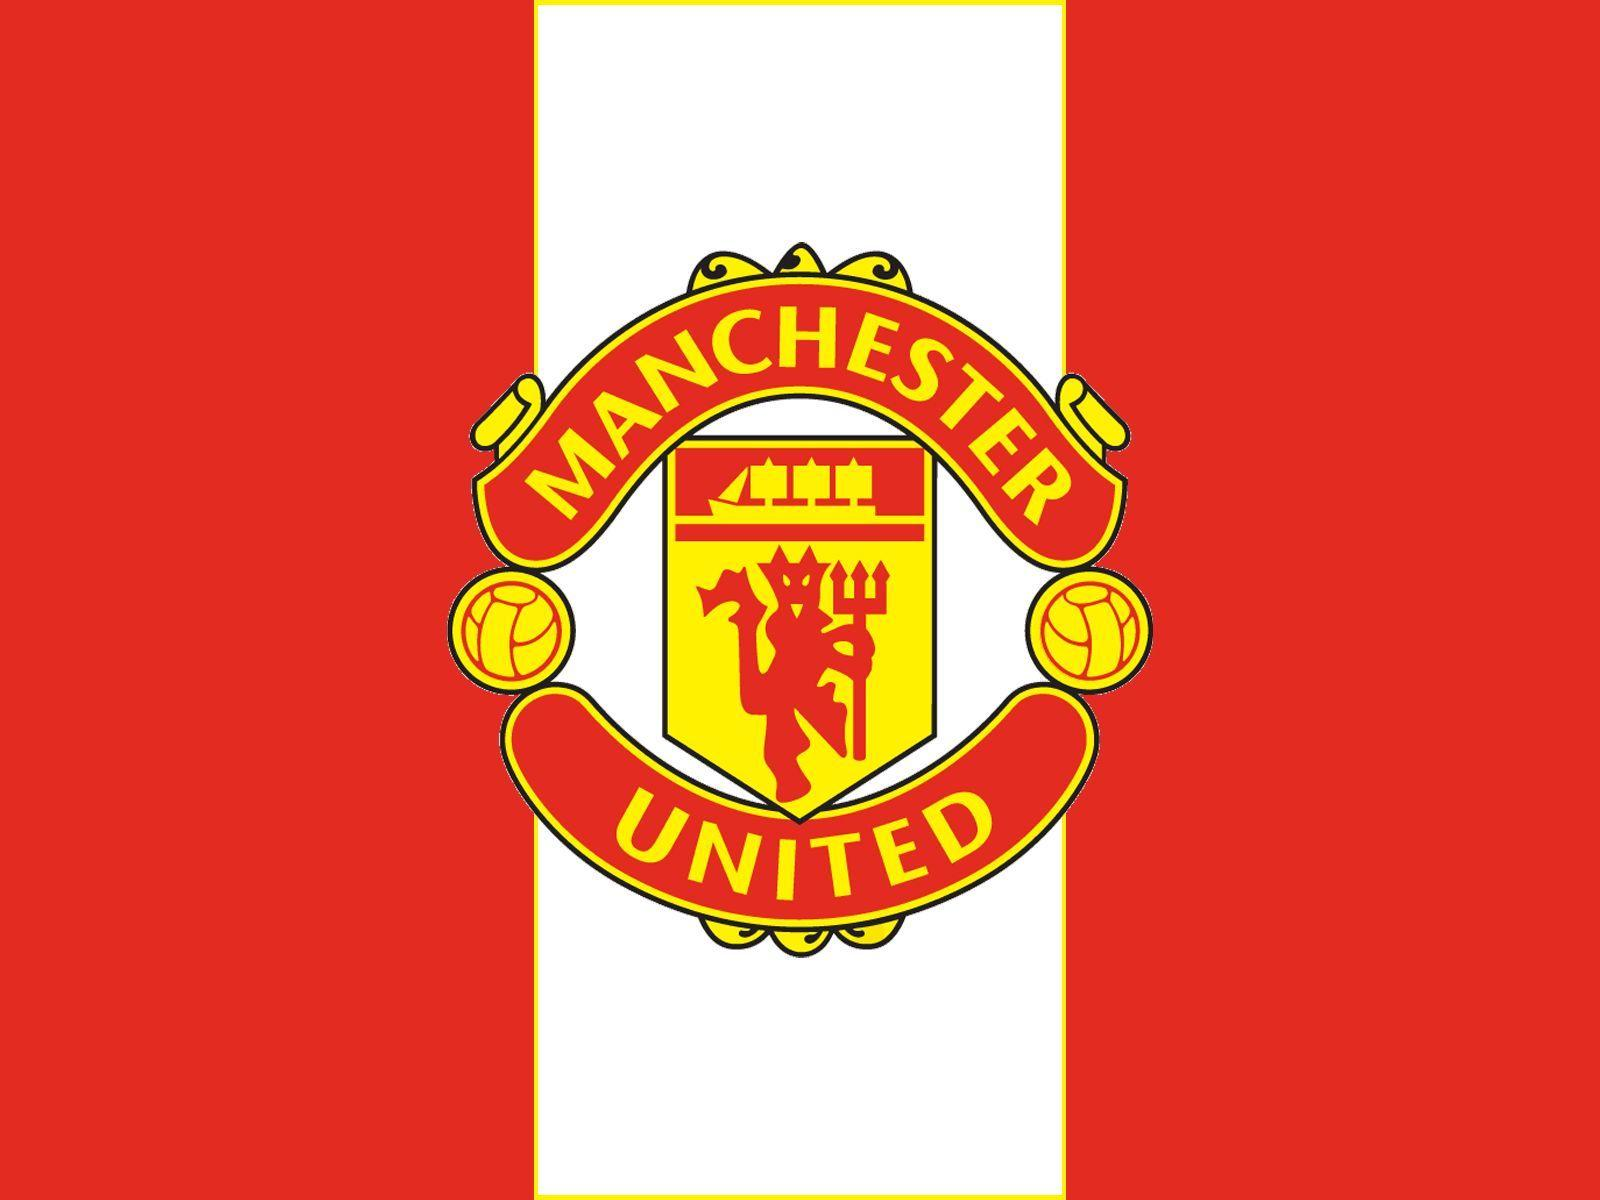 Manchester United Logo Wallpapers HD 2016 1600x1200